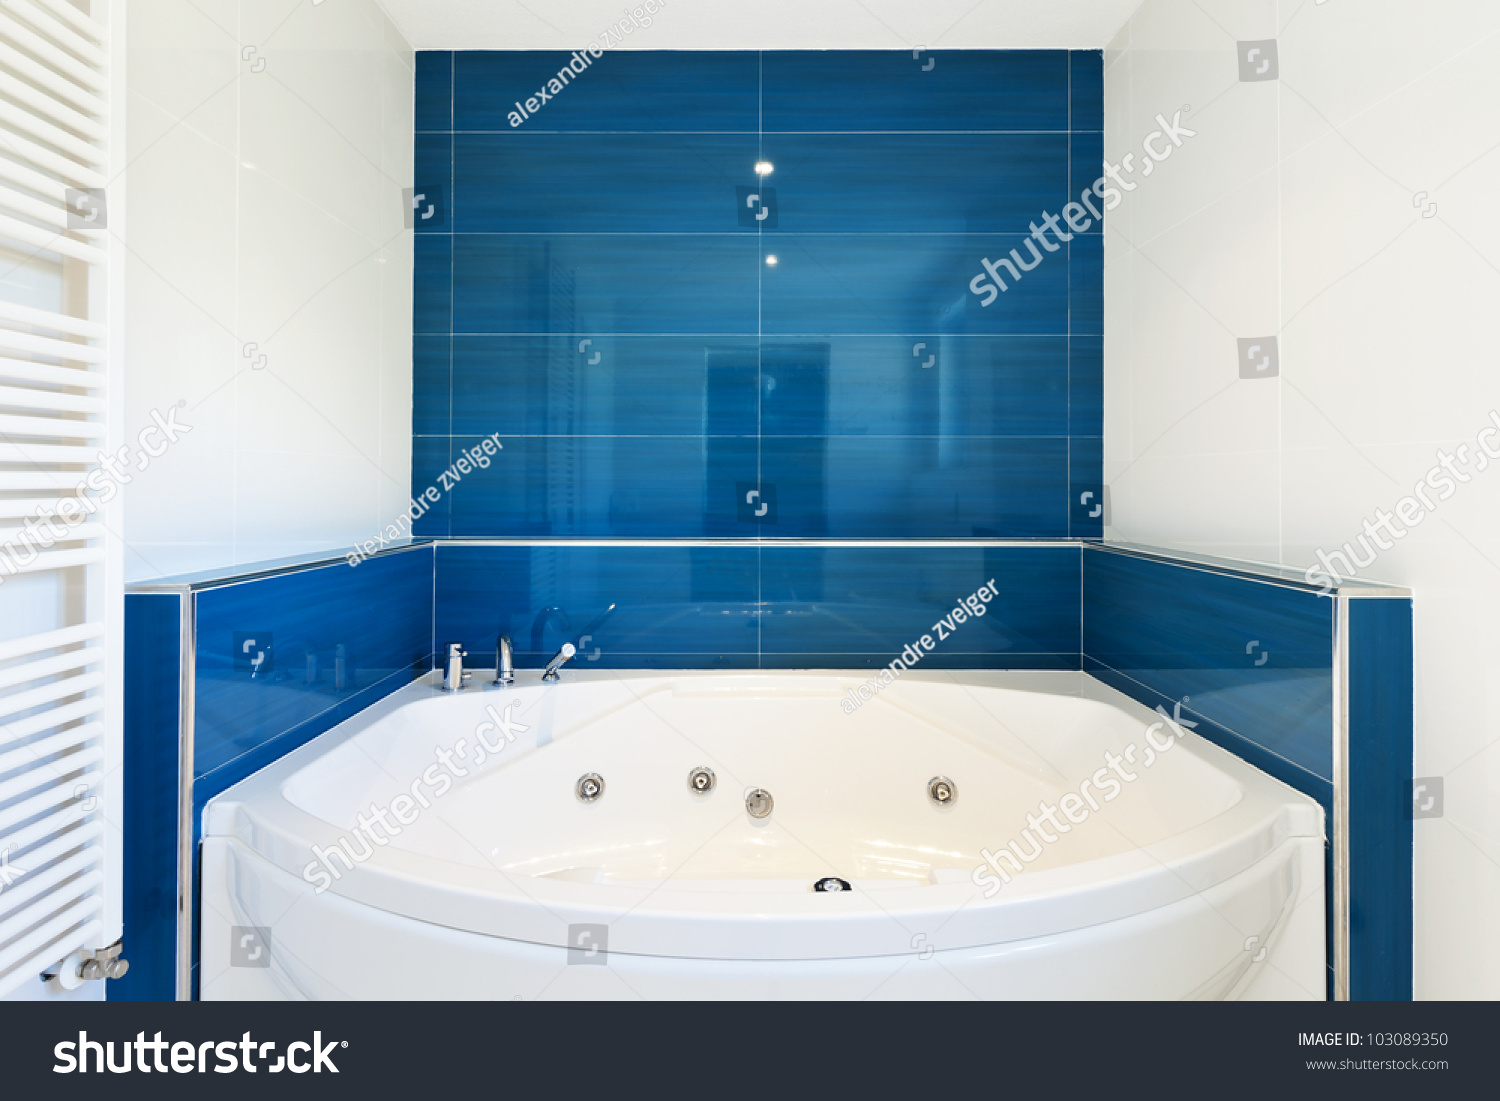 Interior Bathroom Modern House Hot Tub Stock Photo (Royalty Free ...